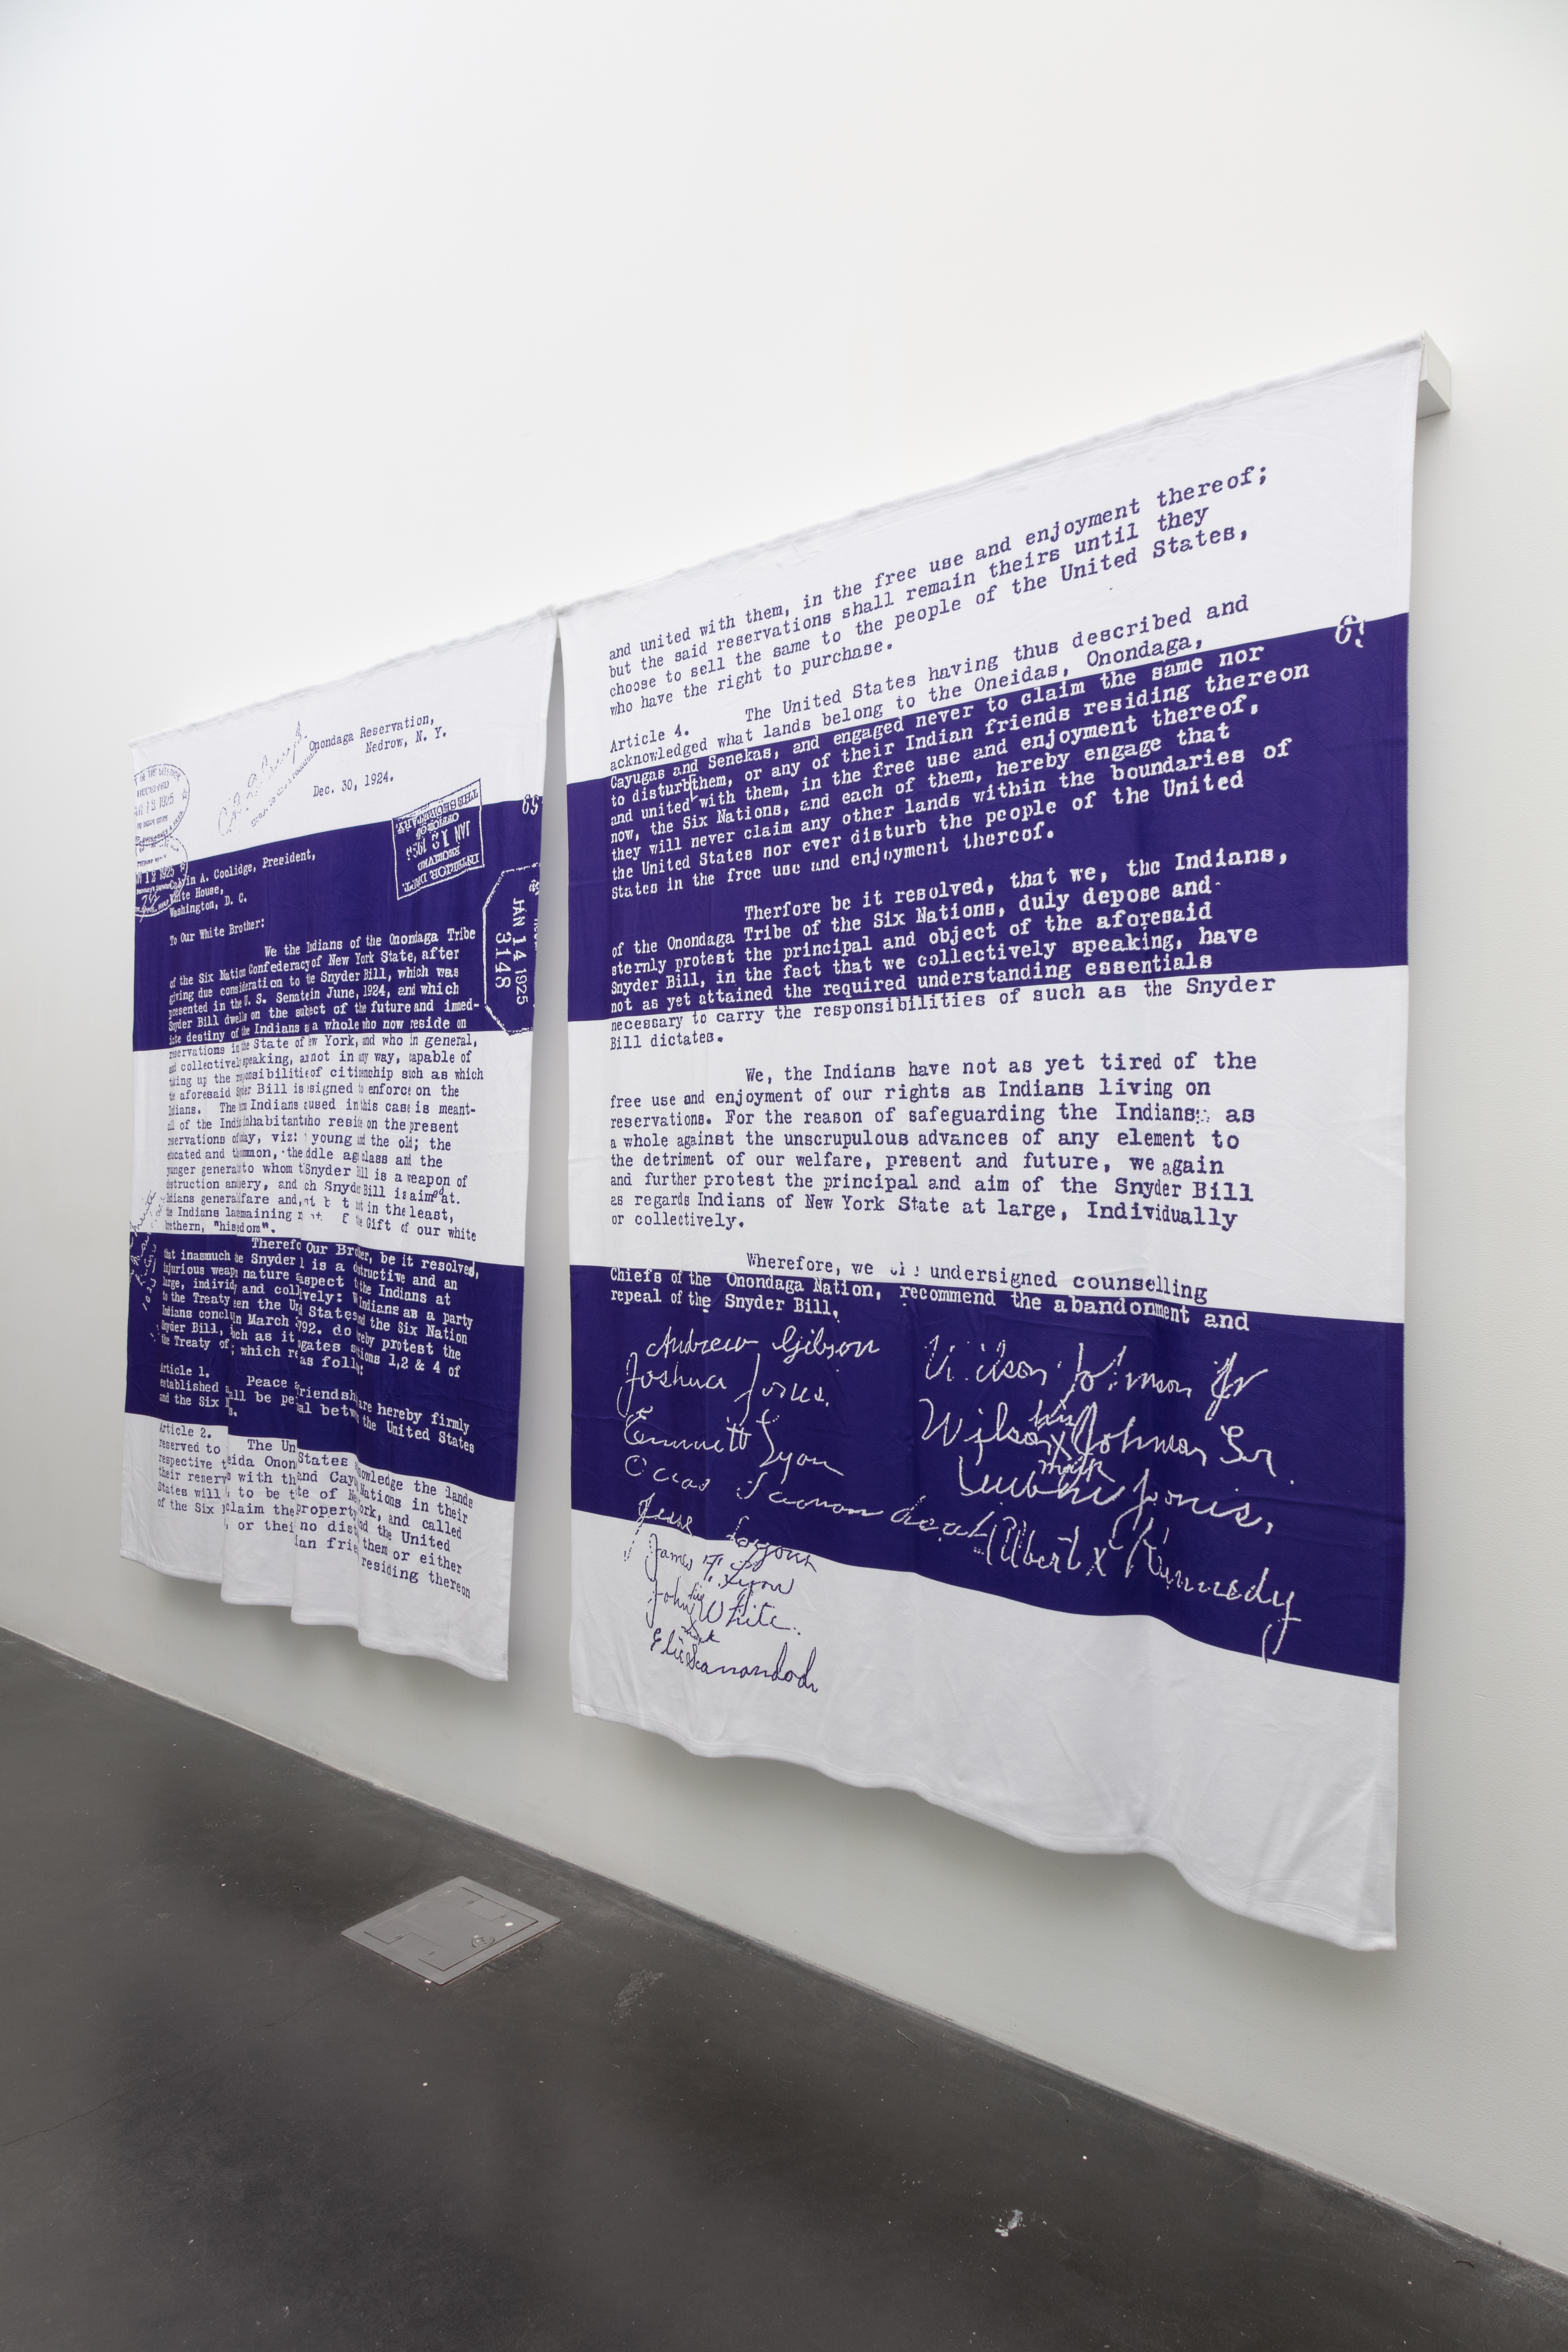 [Image description Artist Alan Michelson's, artwork of a reproduction of the December 30, 1924 letter to Calvin Coolidge by the chiefs of the Onondaga Nation, protesting the Indian Citizenship Act and reaffirming Onondaga sovereignty. The reproduction is on a pair of blankets in the colors white and purple and hangs on a white gallery wall with a dark concrete floor.]